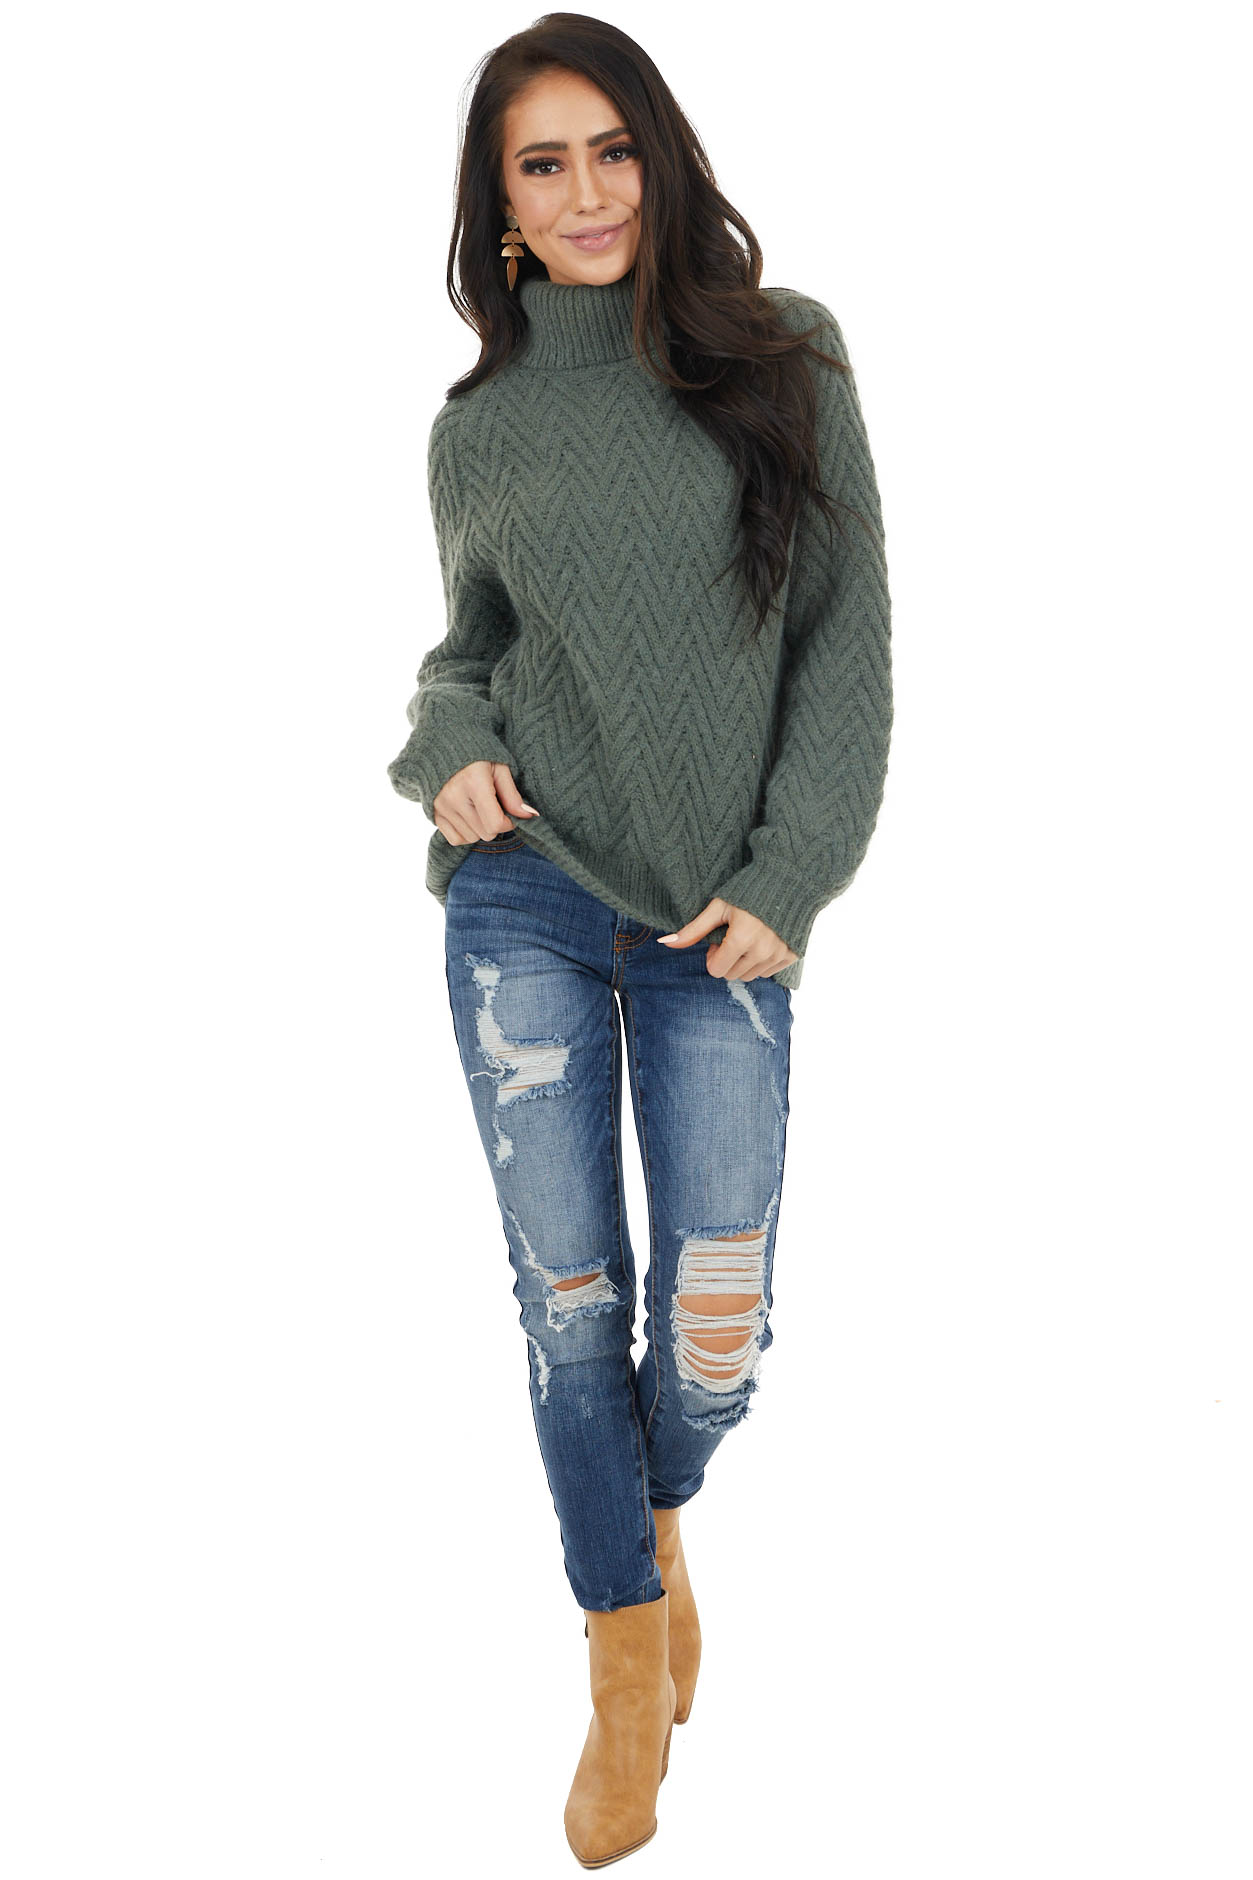 Faded Olive Chevron Textured Sweater with Turtleneck